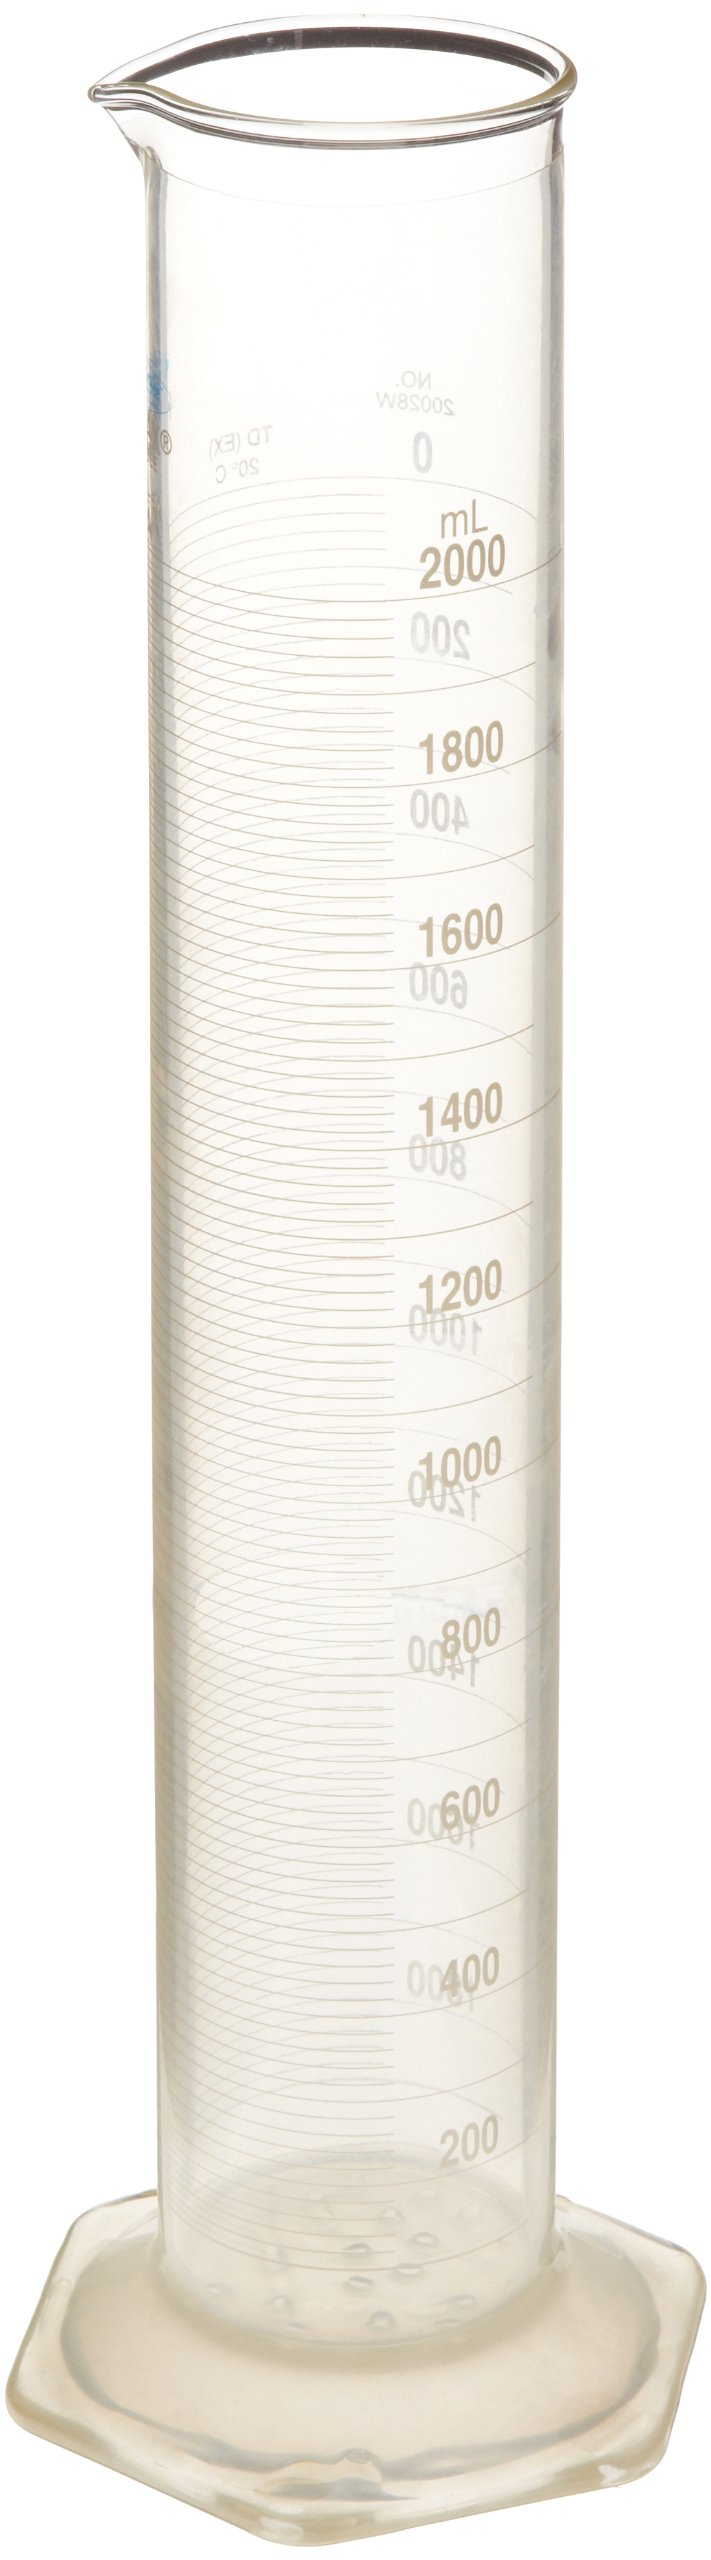 Kontes KC20028W-1000 Borosilicate Glass Class A Graduated Cylinder with Bumper Gaurd, Single Metric Scale, Calibrated To Deliver, 1000mL Capacity